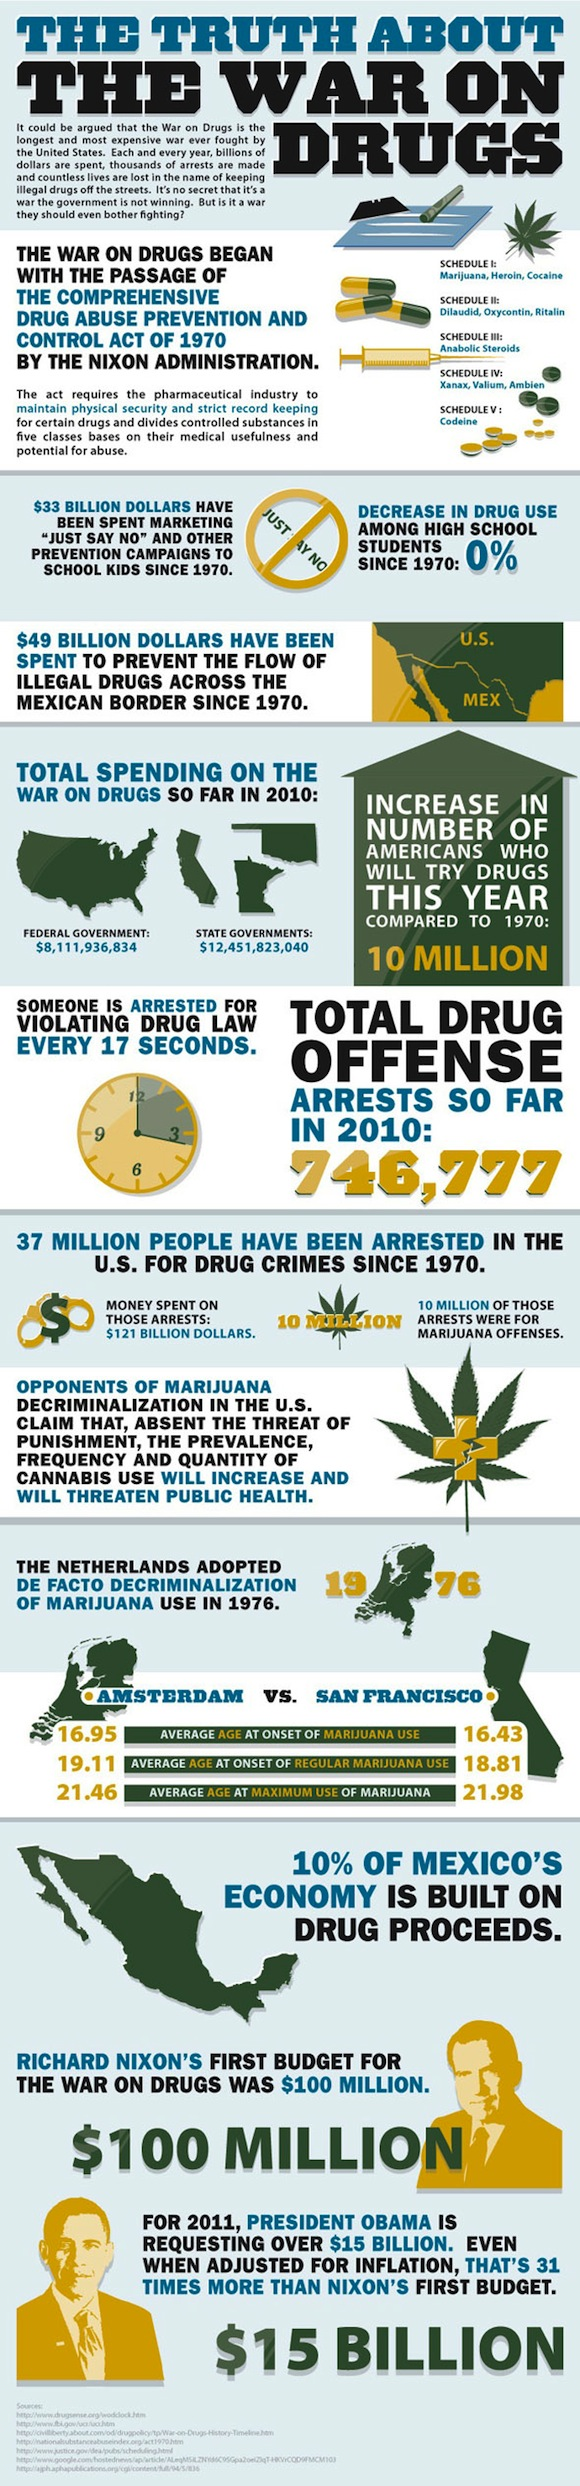 War On Drugs Info Graphic